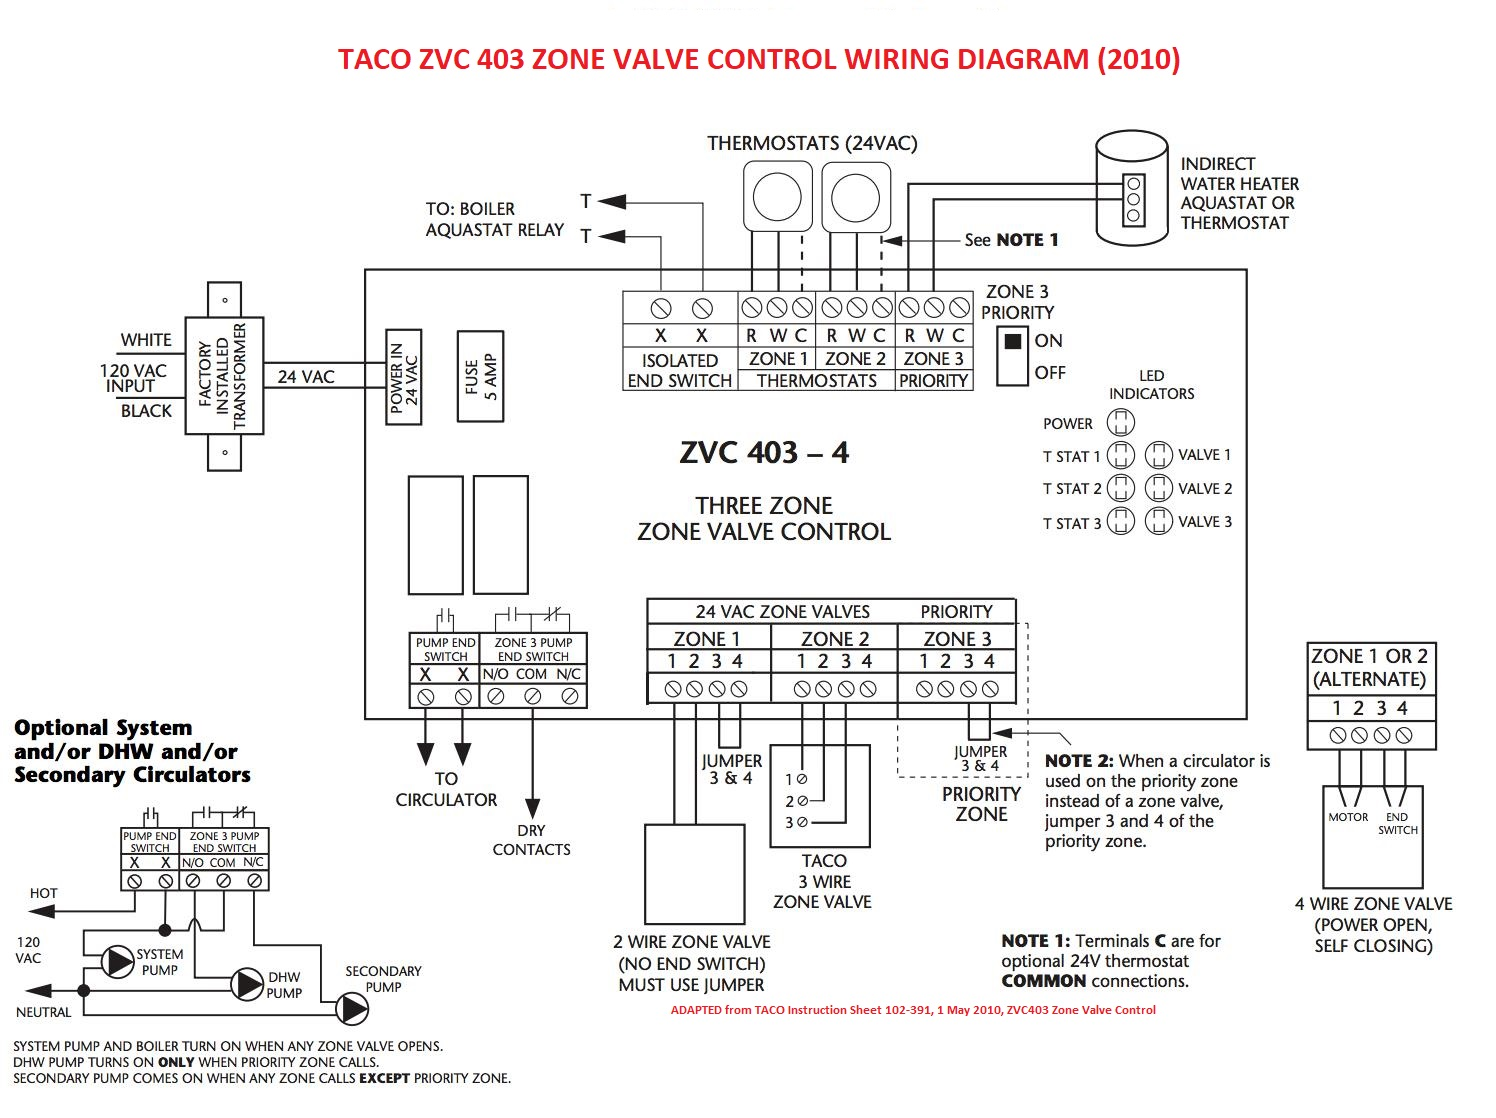 valve wiring diagram wiring library diagram experts  zone valve wiring installation \u0026 instructions guide to heating egr valve wiring diagram taci zvc493 wiring